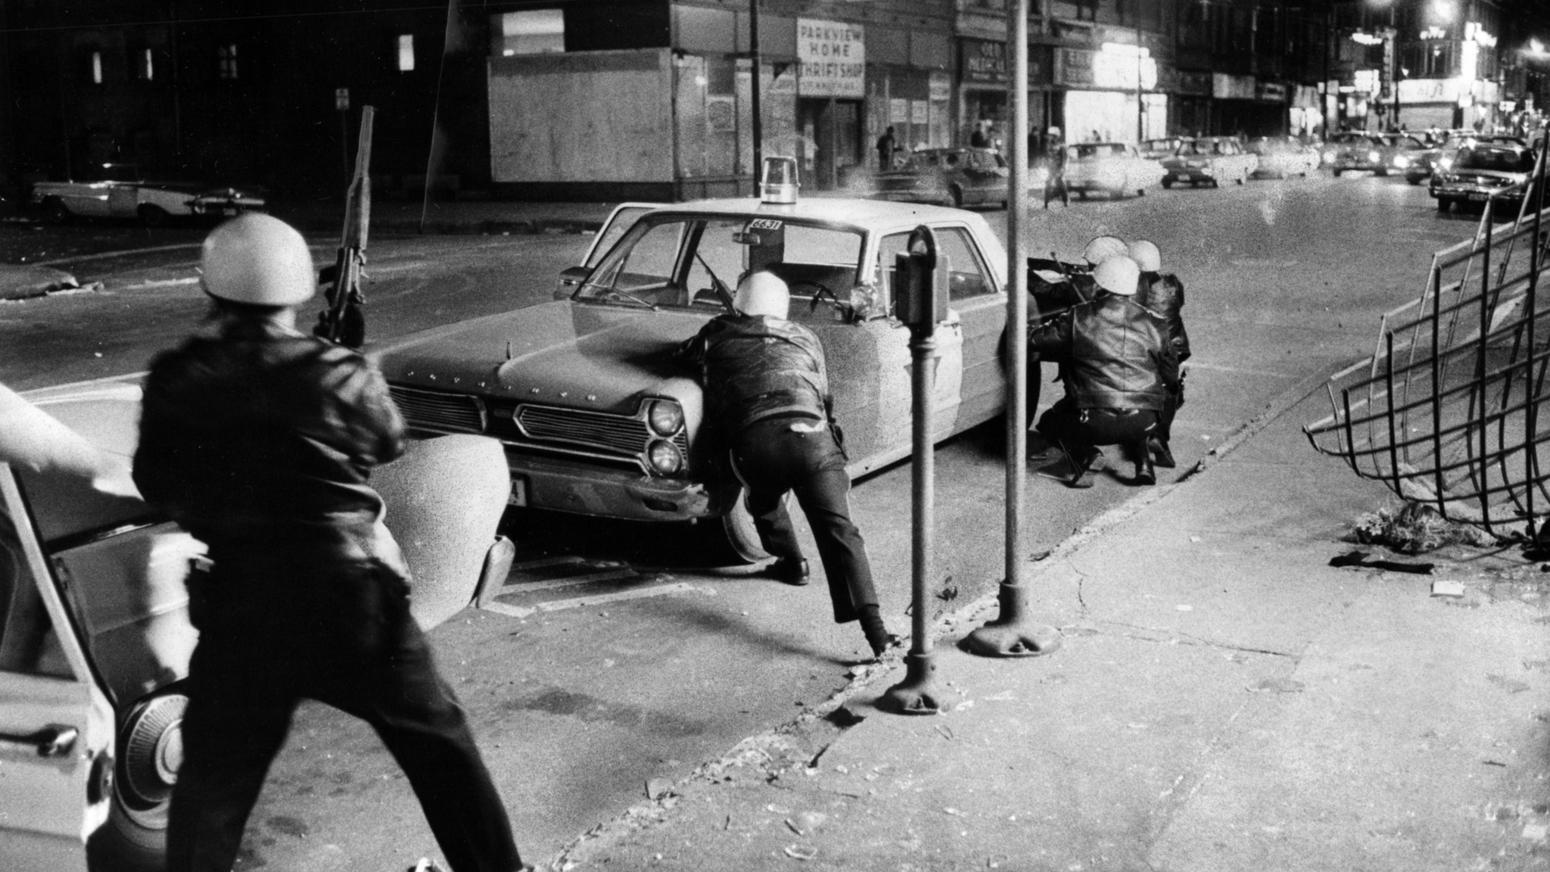 Memories of the 1968 King riots, a story we would rather forget